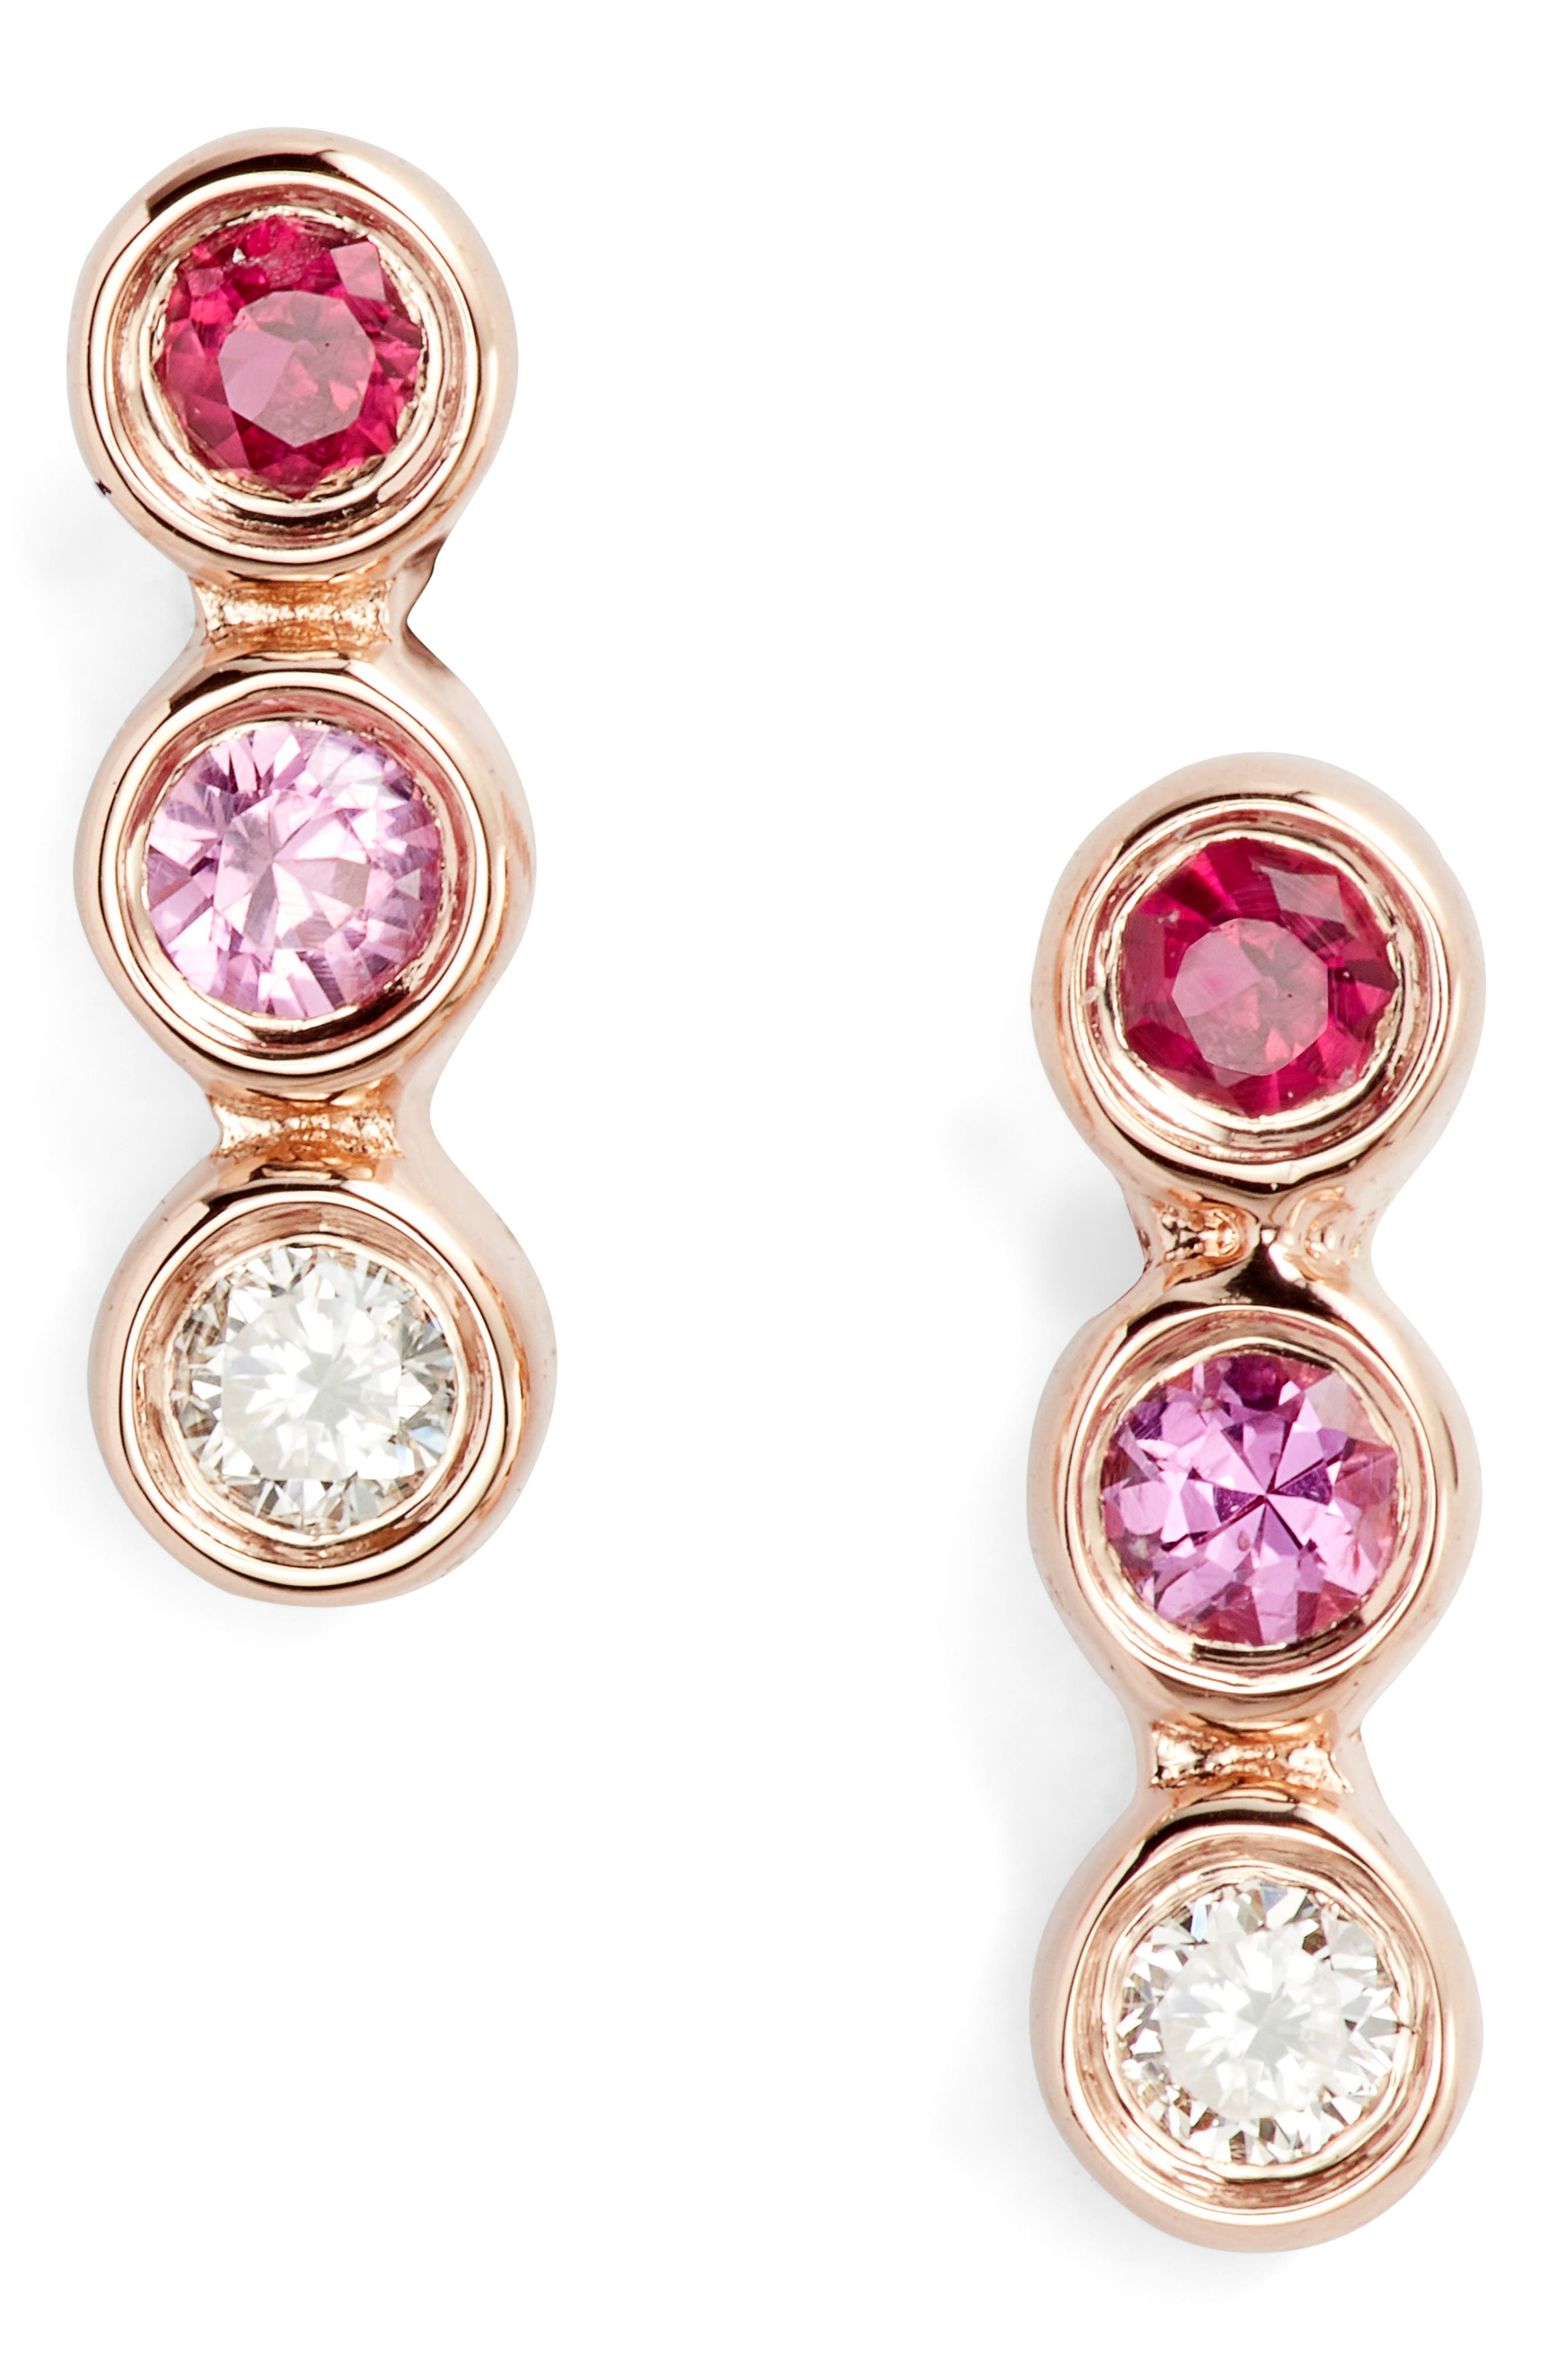 Diamond & Pink Sapphire Trio Bezel Stud Earrings,                             Main thumbnail 1, color,                             YELLOW GOLD/ PINK TONES